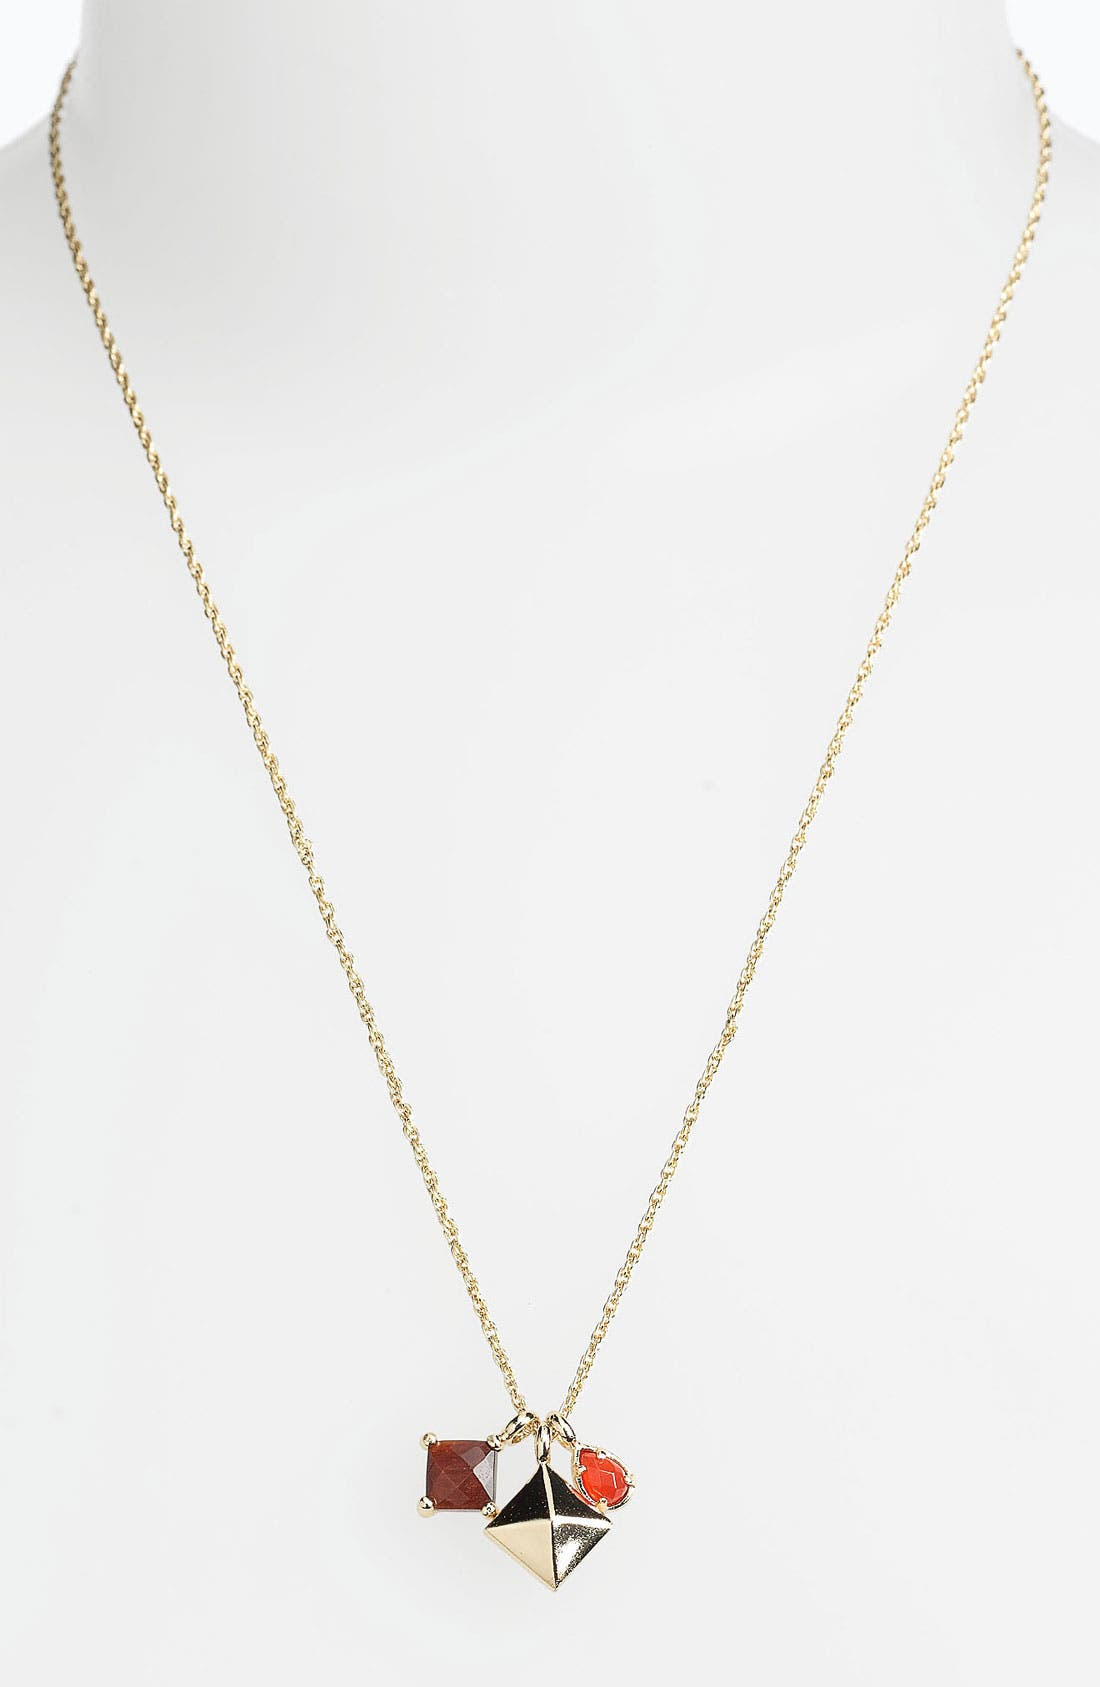 Main Image - Kendra Scott 'Sira' Pendant Necklace